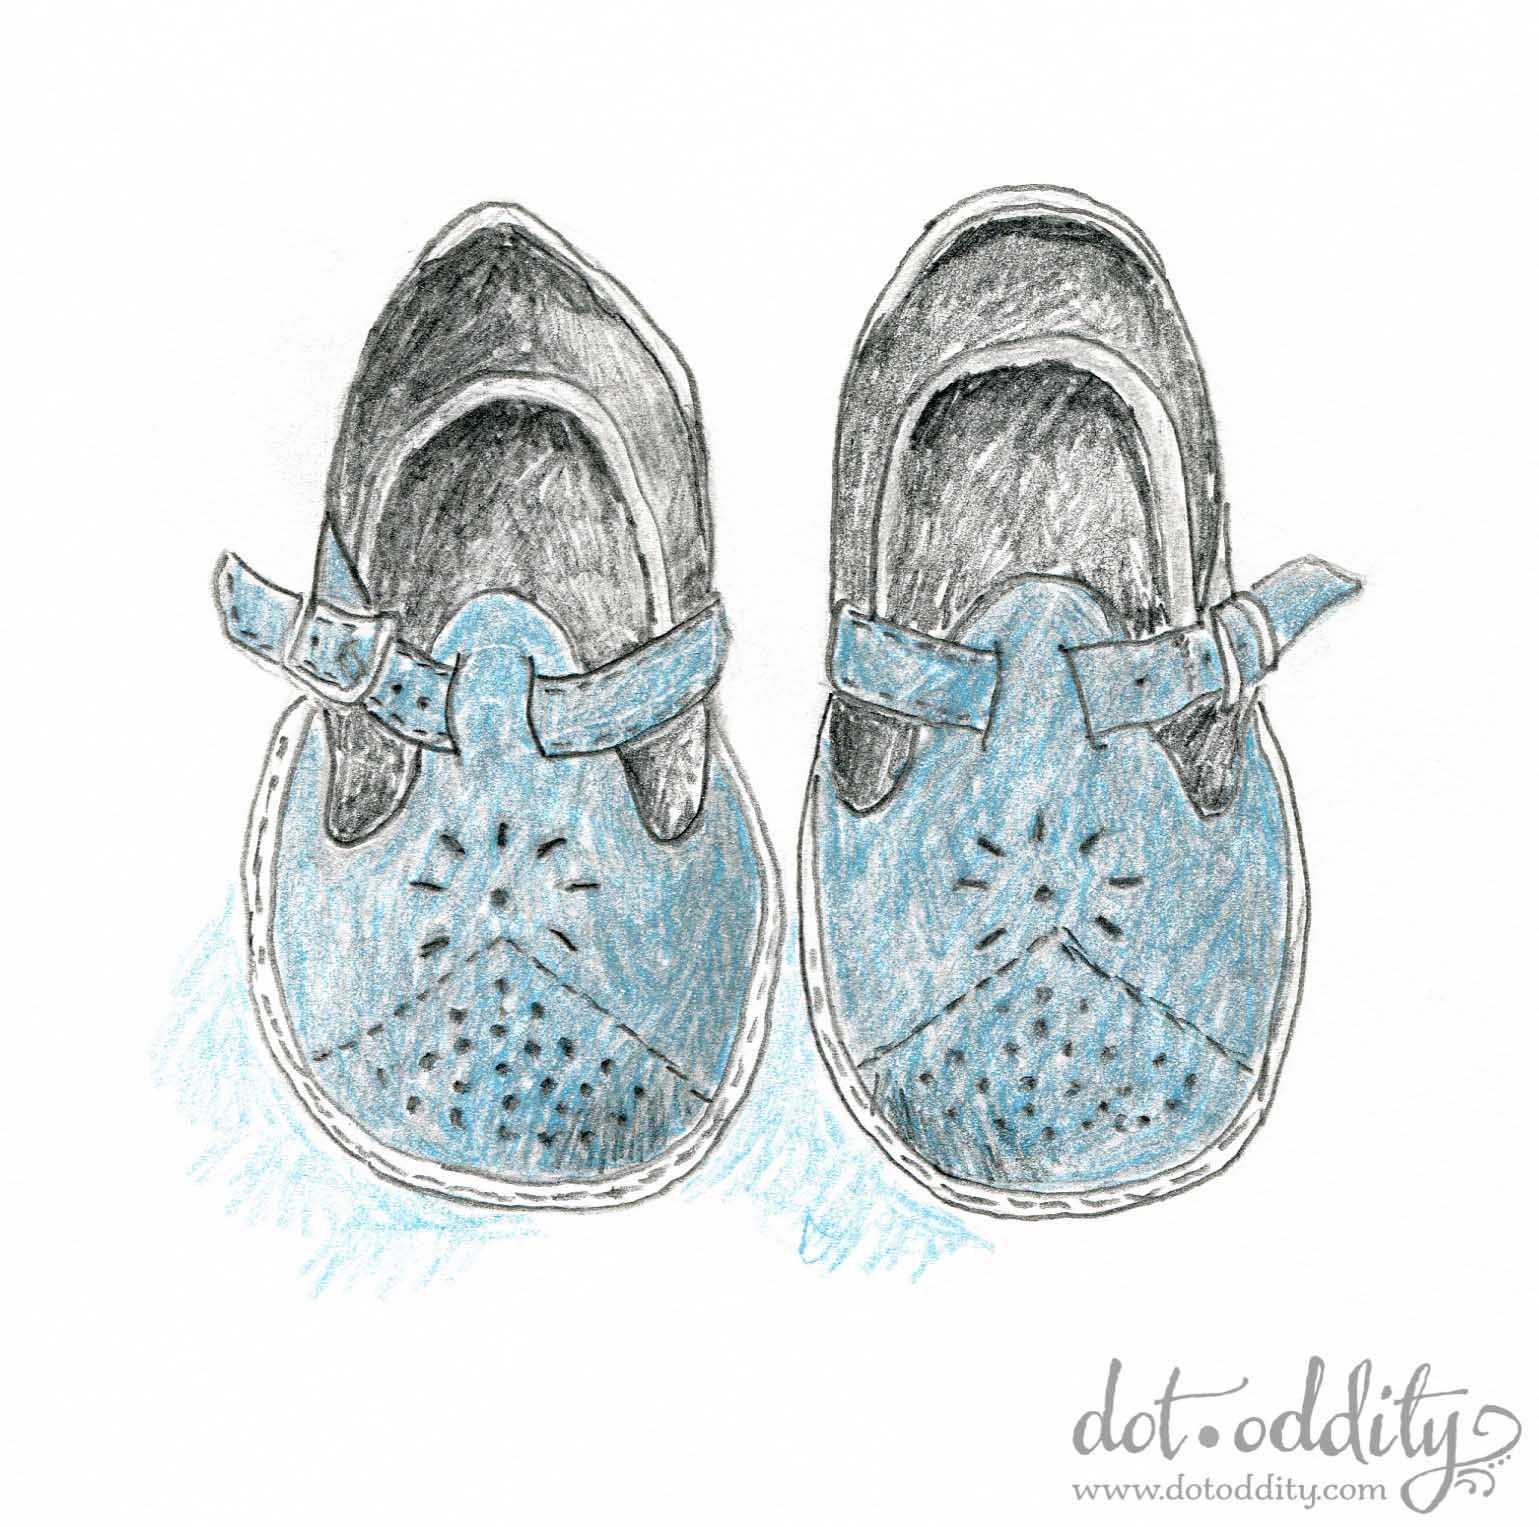 the little shoe project 2015 august by Maria Larsson